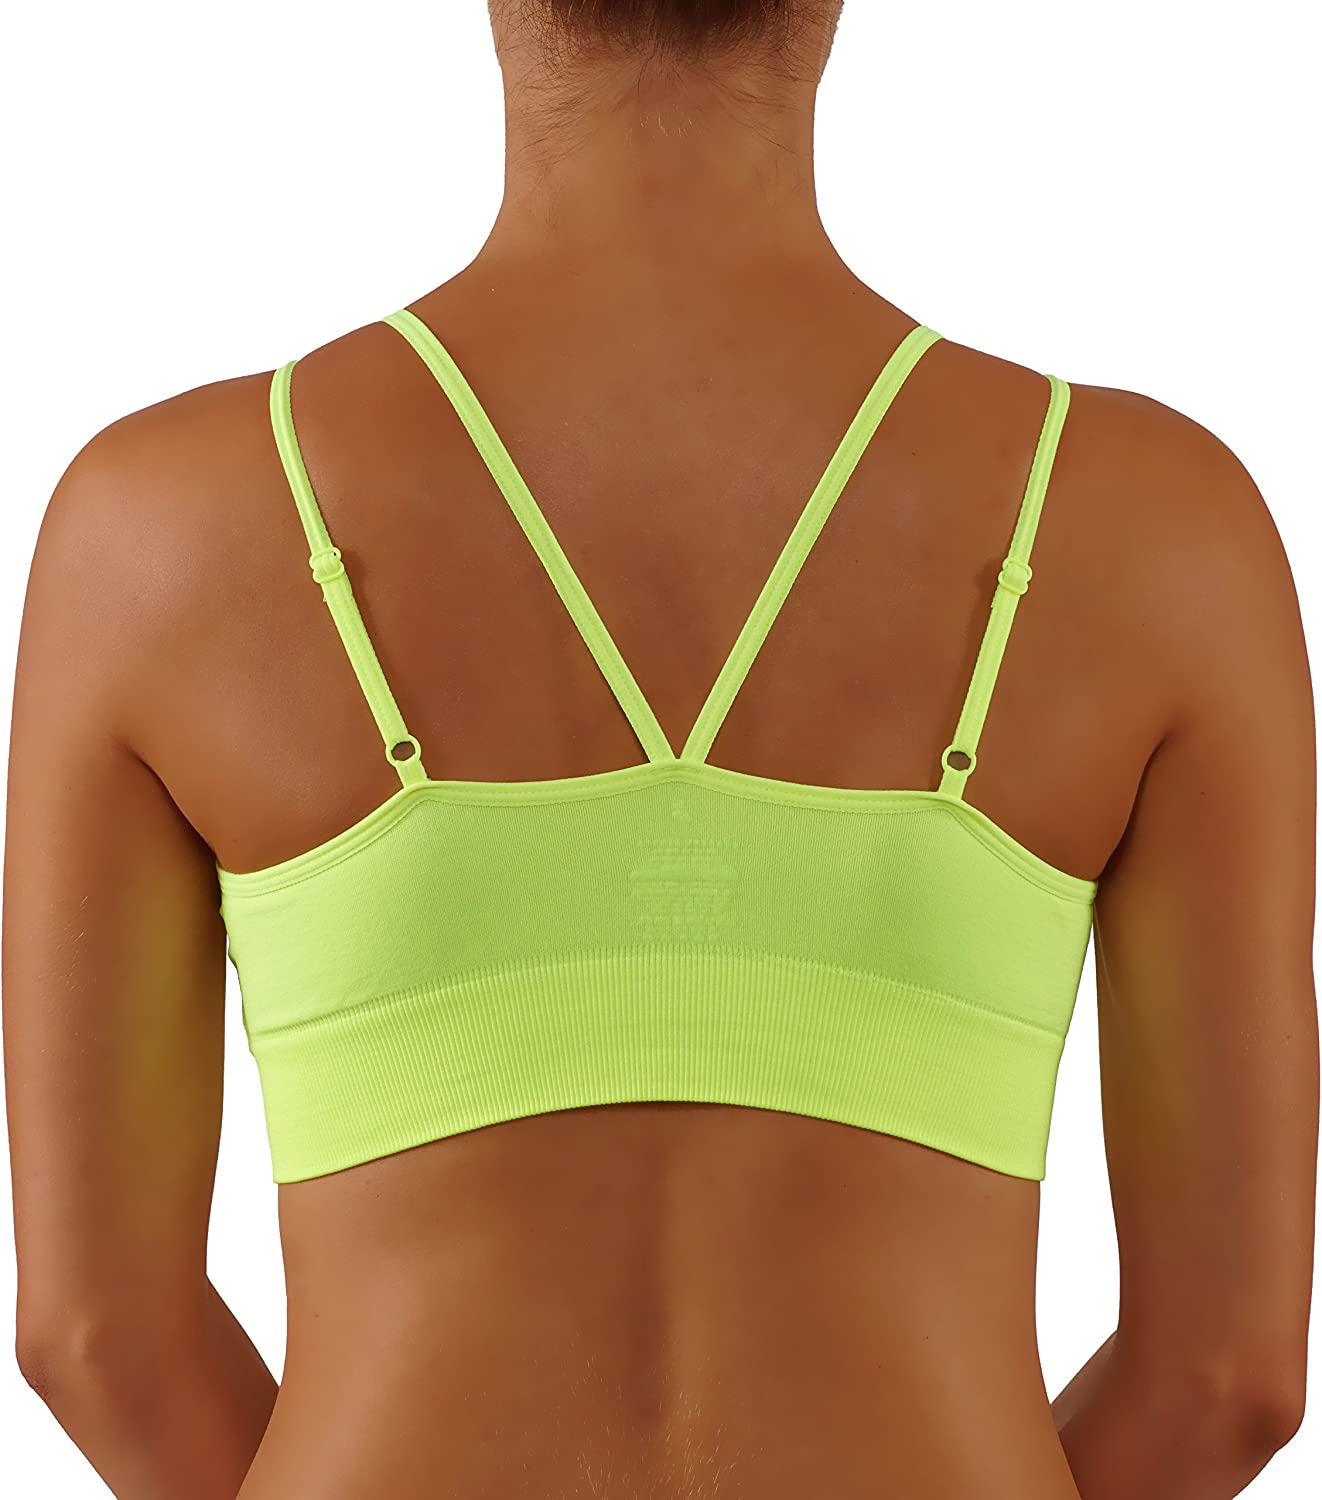 Bise Womens Yoga Bra with Criss Cross Adjustable Straps Medium Support Workout Top Sports and Fashion 2 in 1.